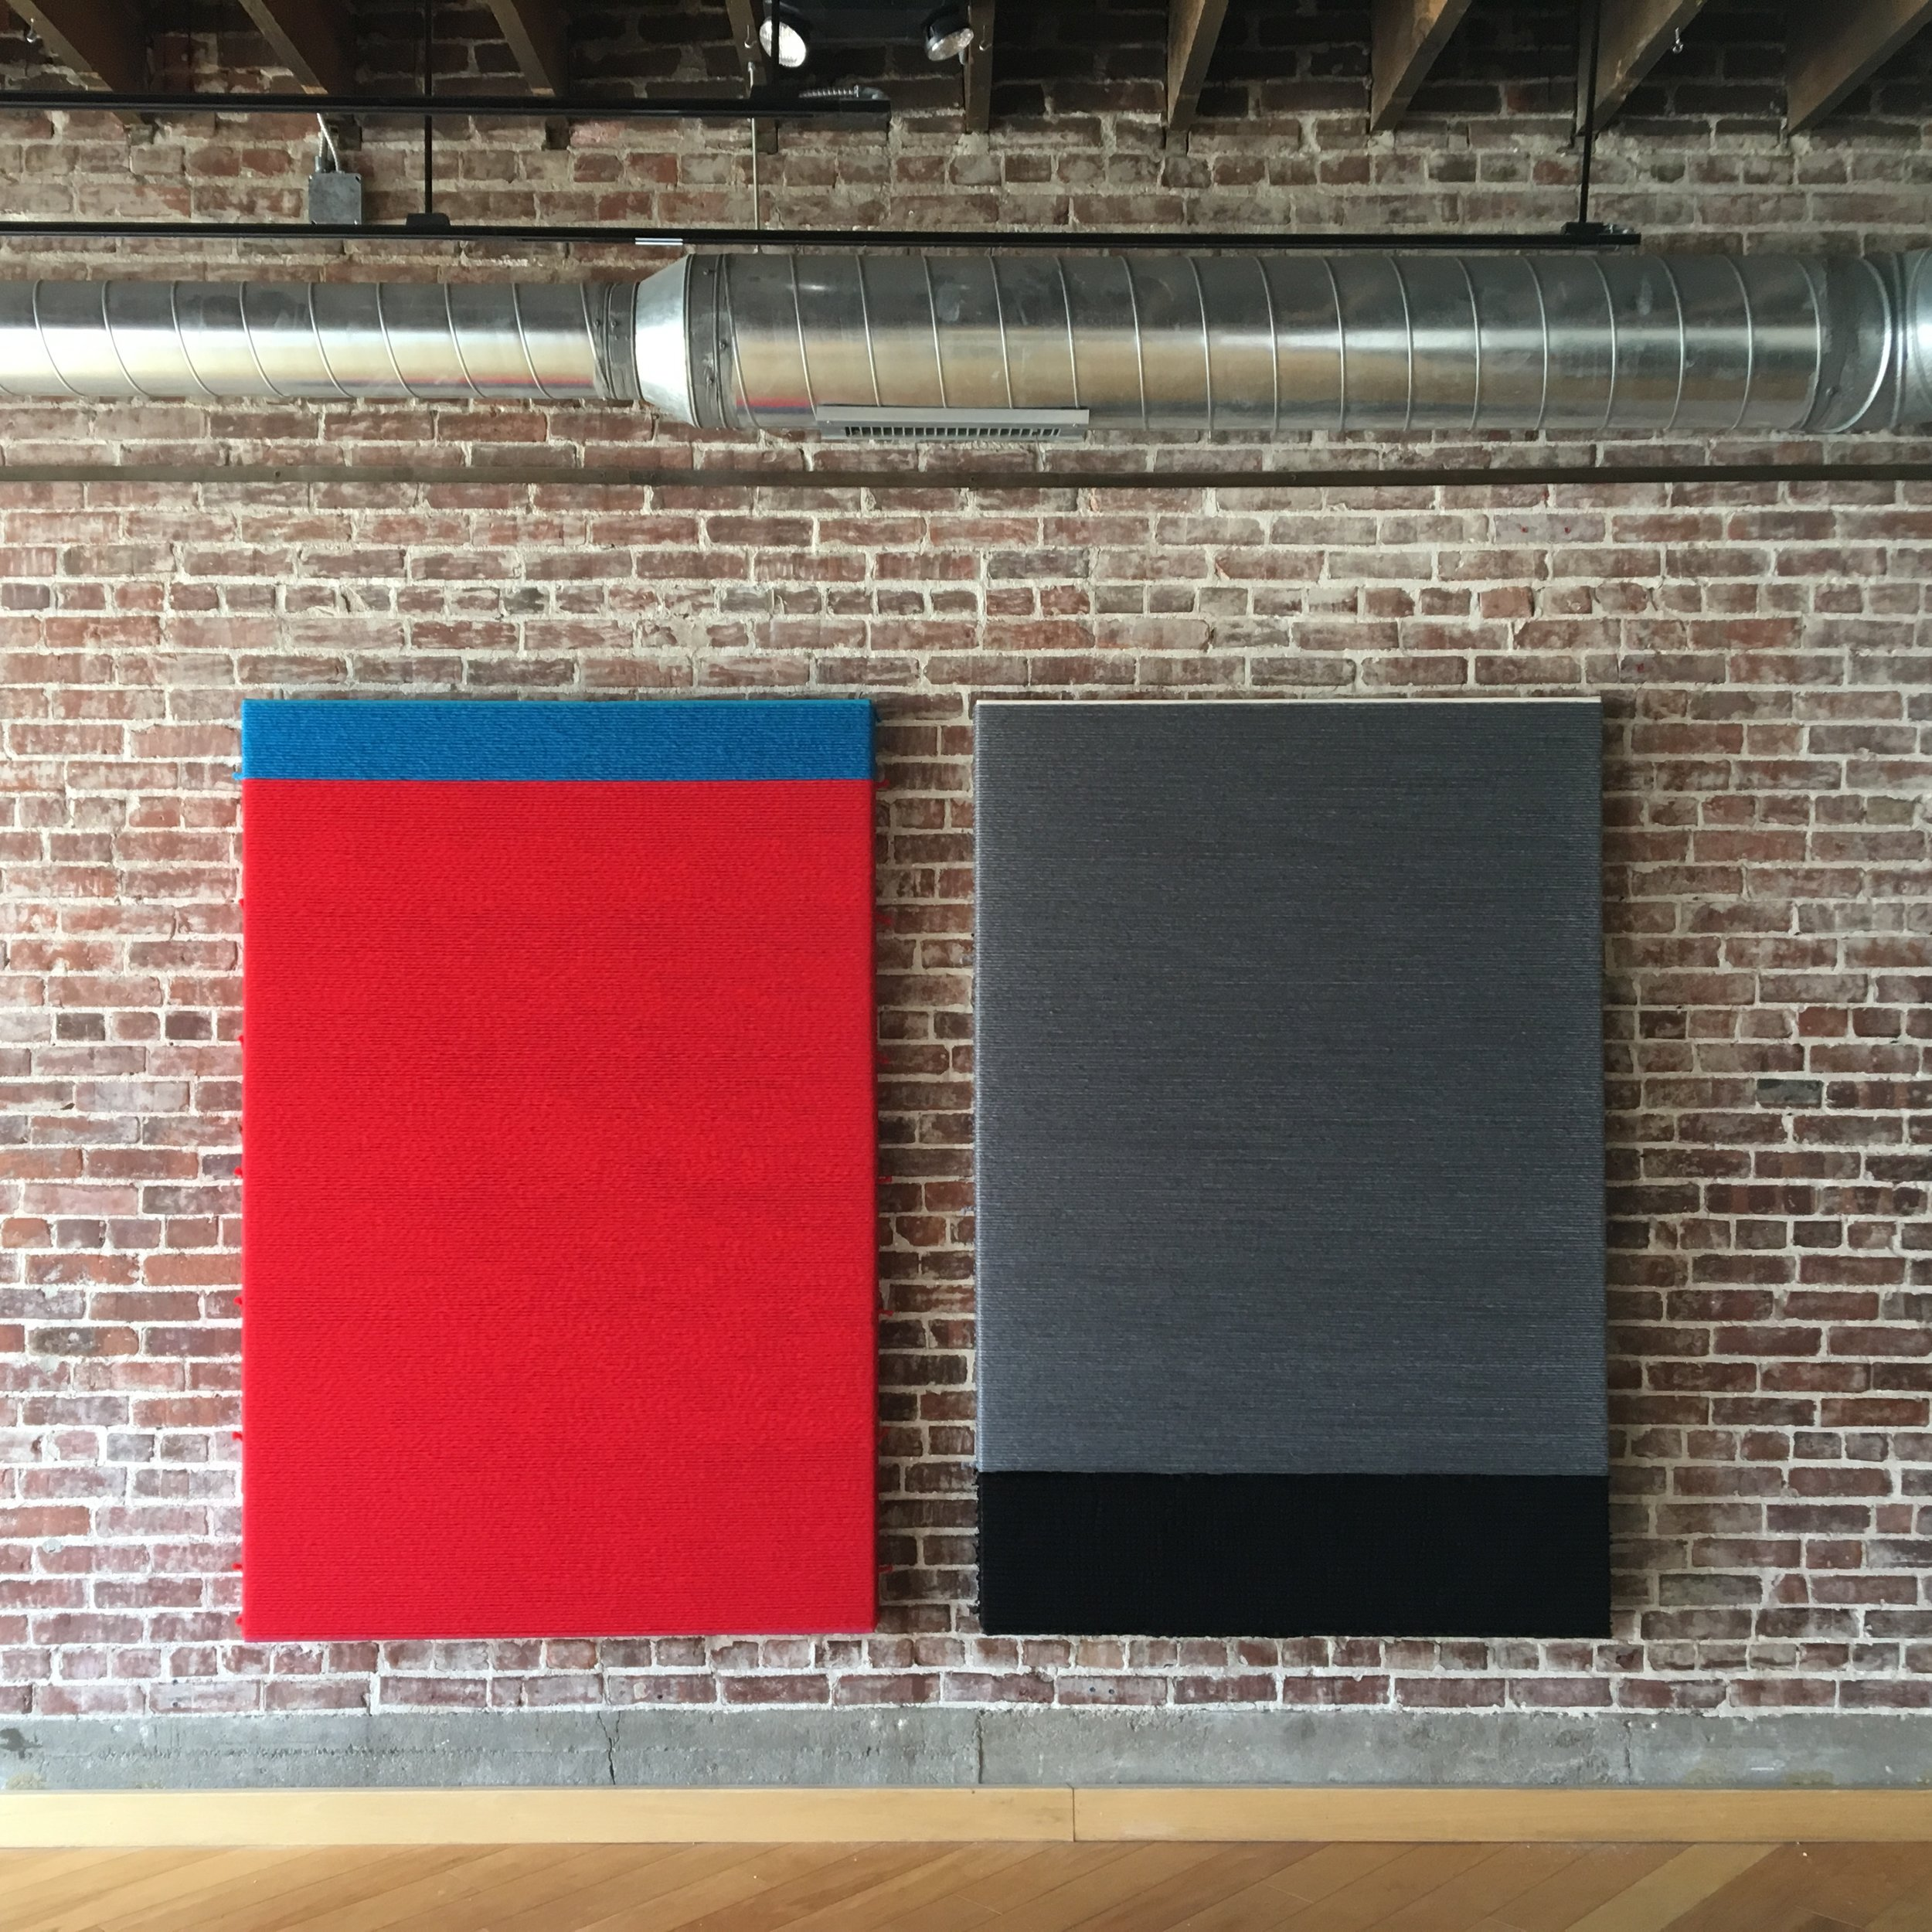 From left to right:  observing multiculturalism - he finally decided to open  up to me and loads of anger just poured out.  2019  wool, wall paint on canvas  72 x 48 in.  observing multiculturalism - the fundamental motive  behind your presence here seems to be accumulating  more power.  2019  wool, nylon, wall paint on canvas  72 x 48 in.